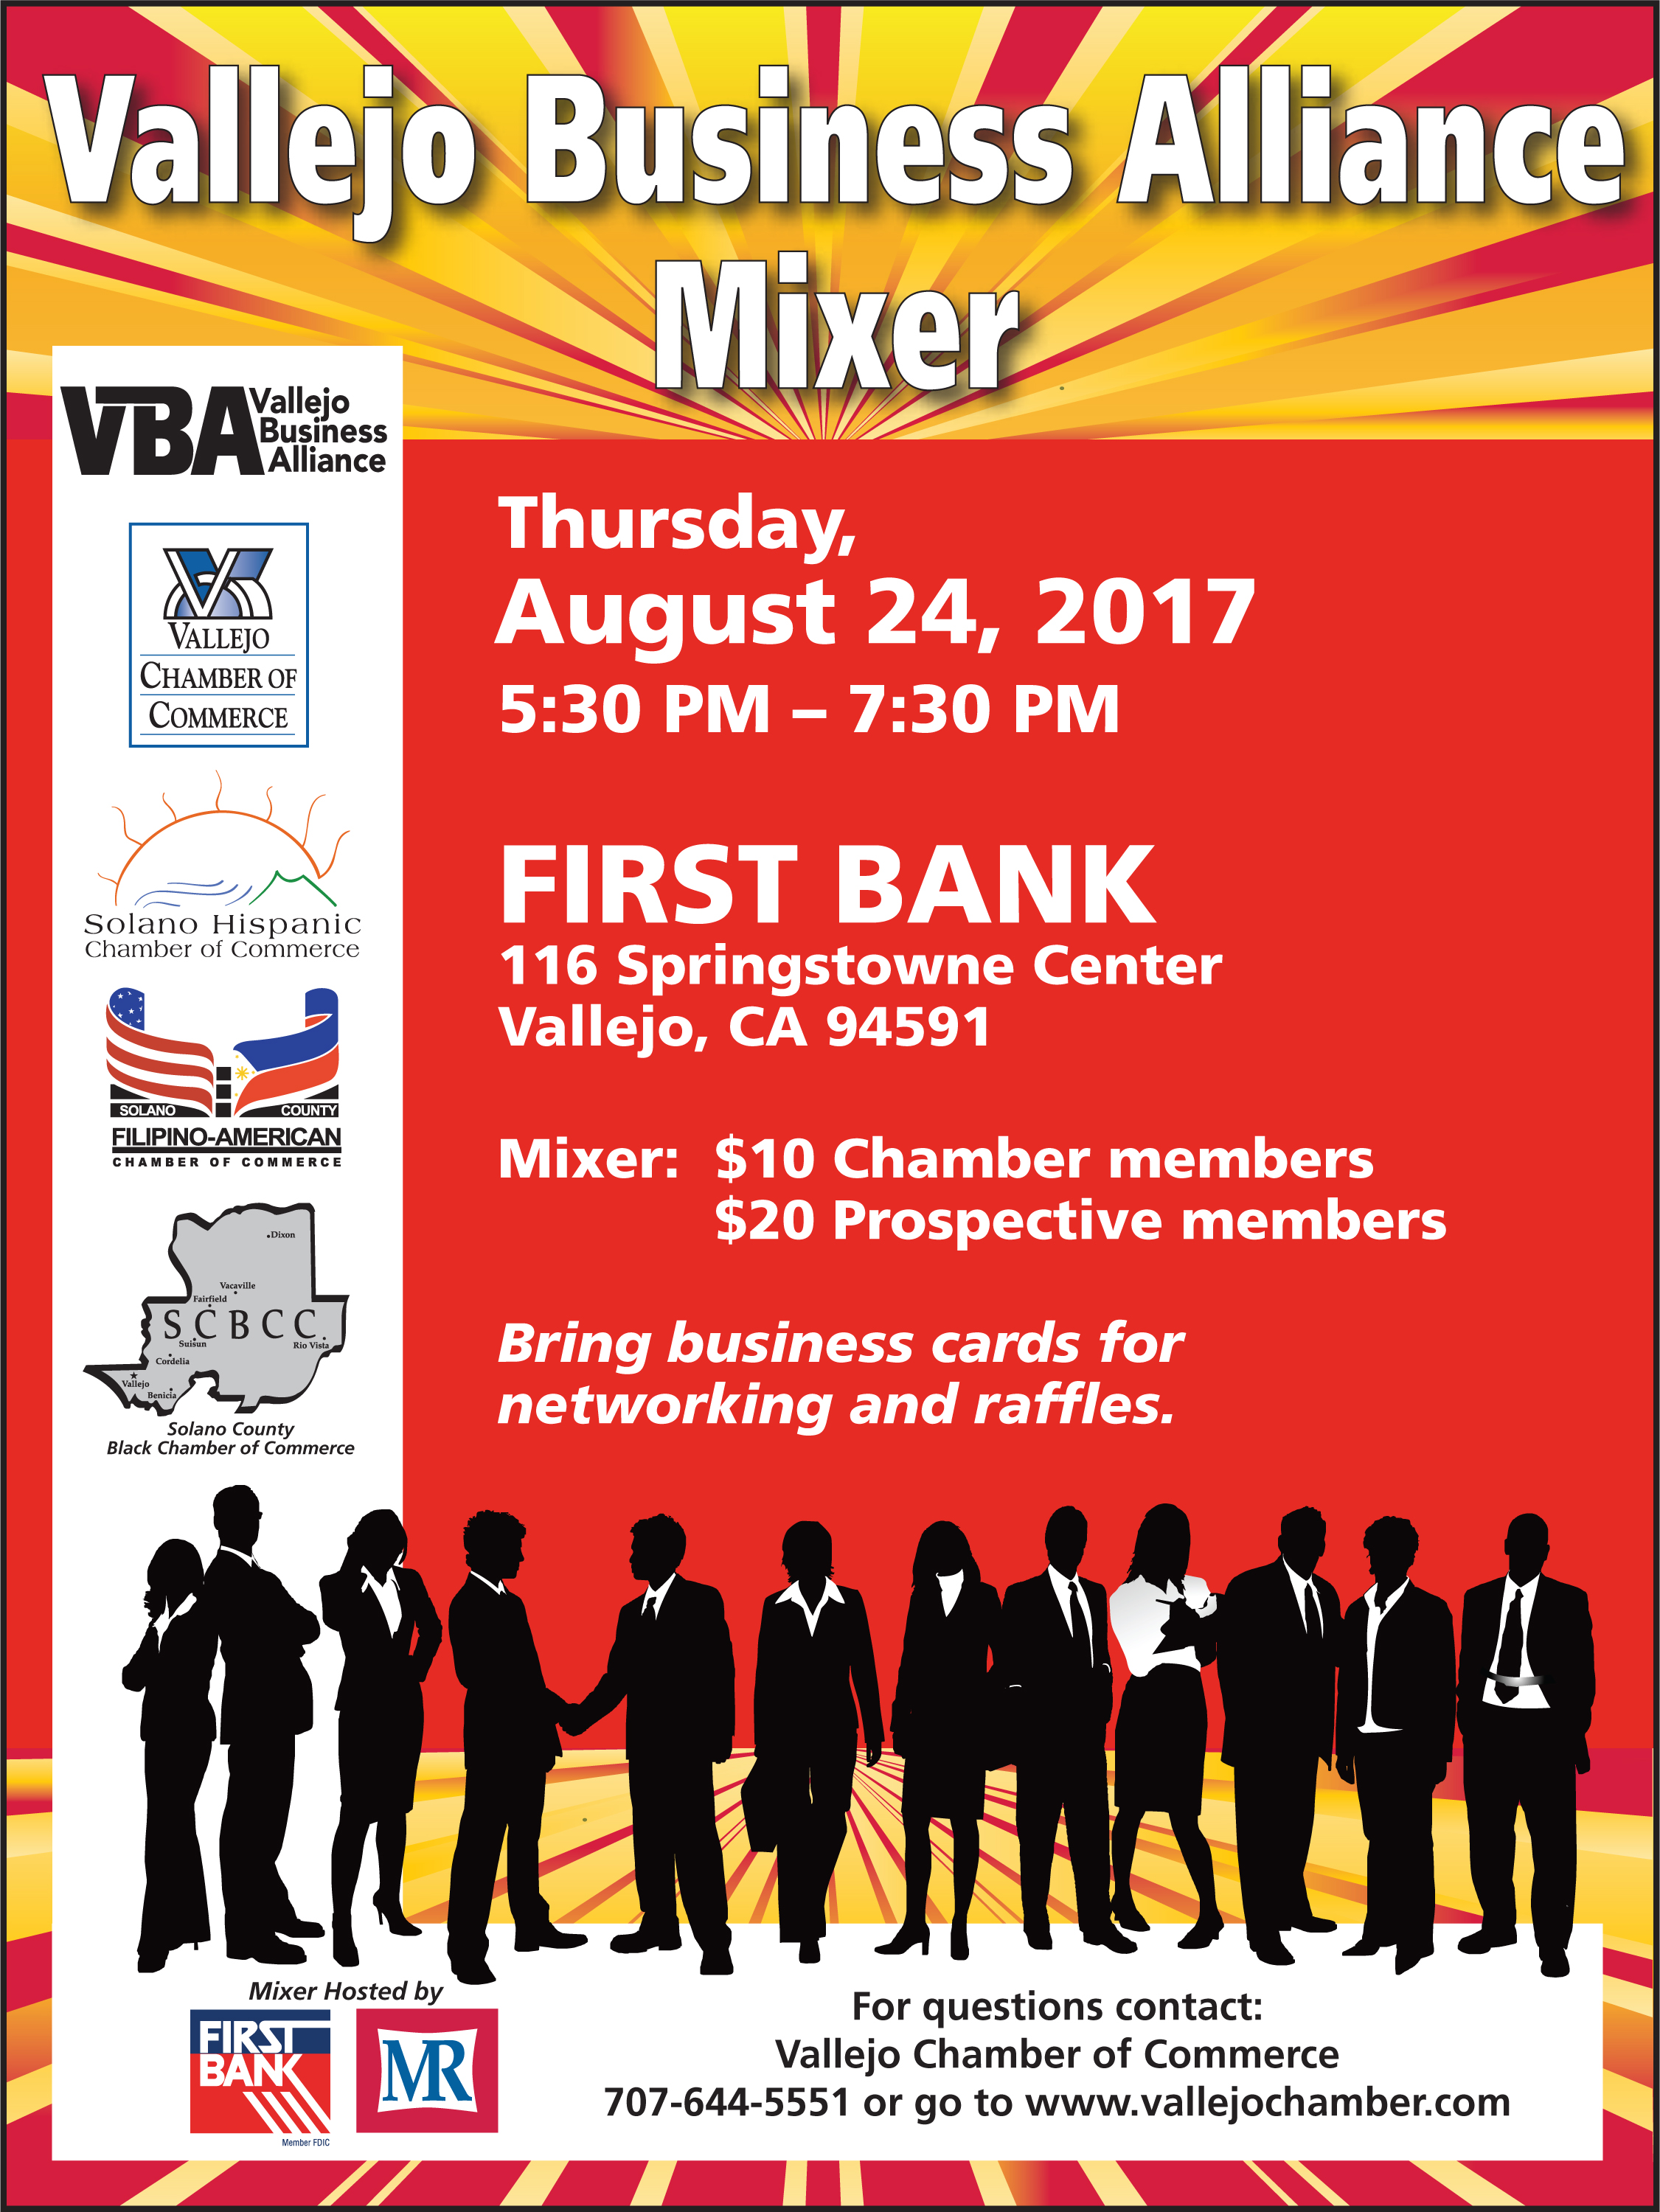 Vallejo-Business-Alliance-Mixer